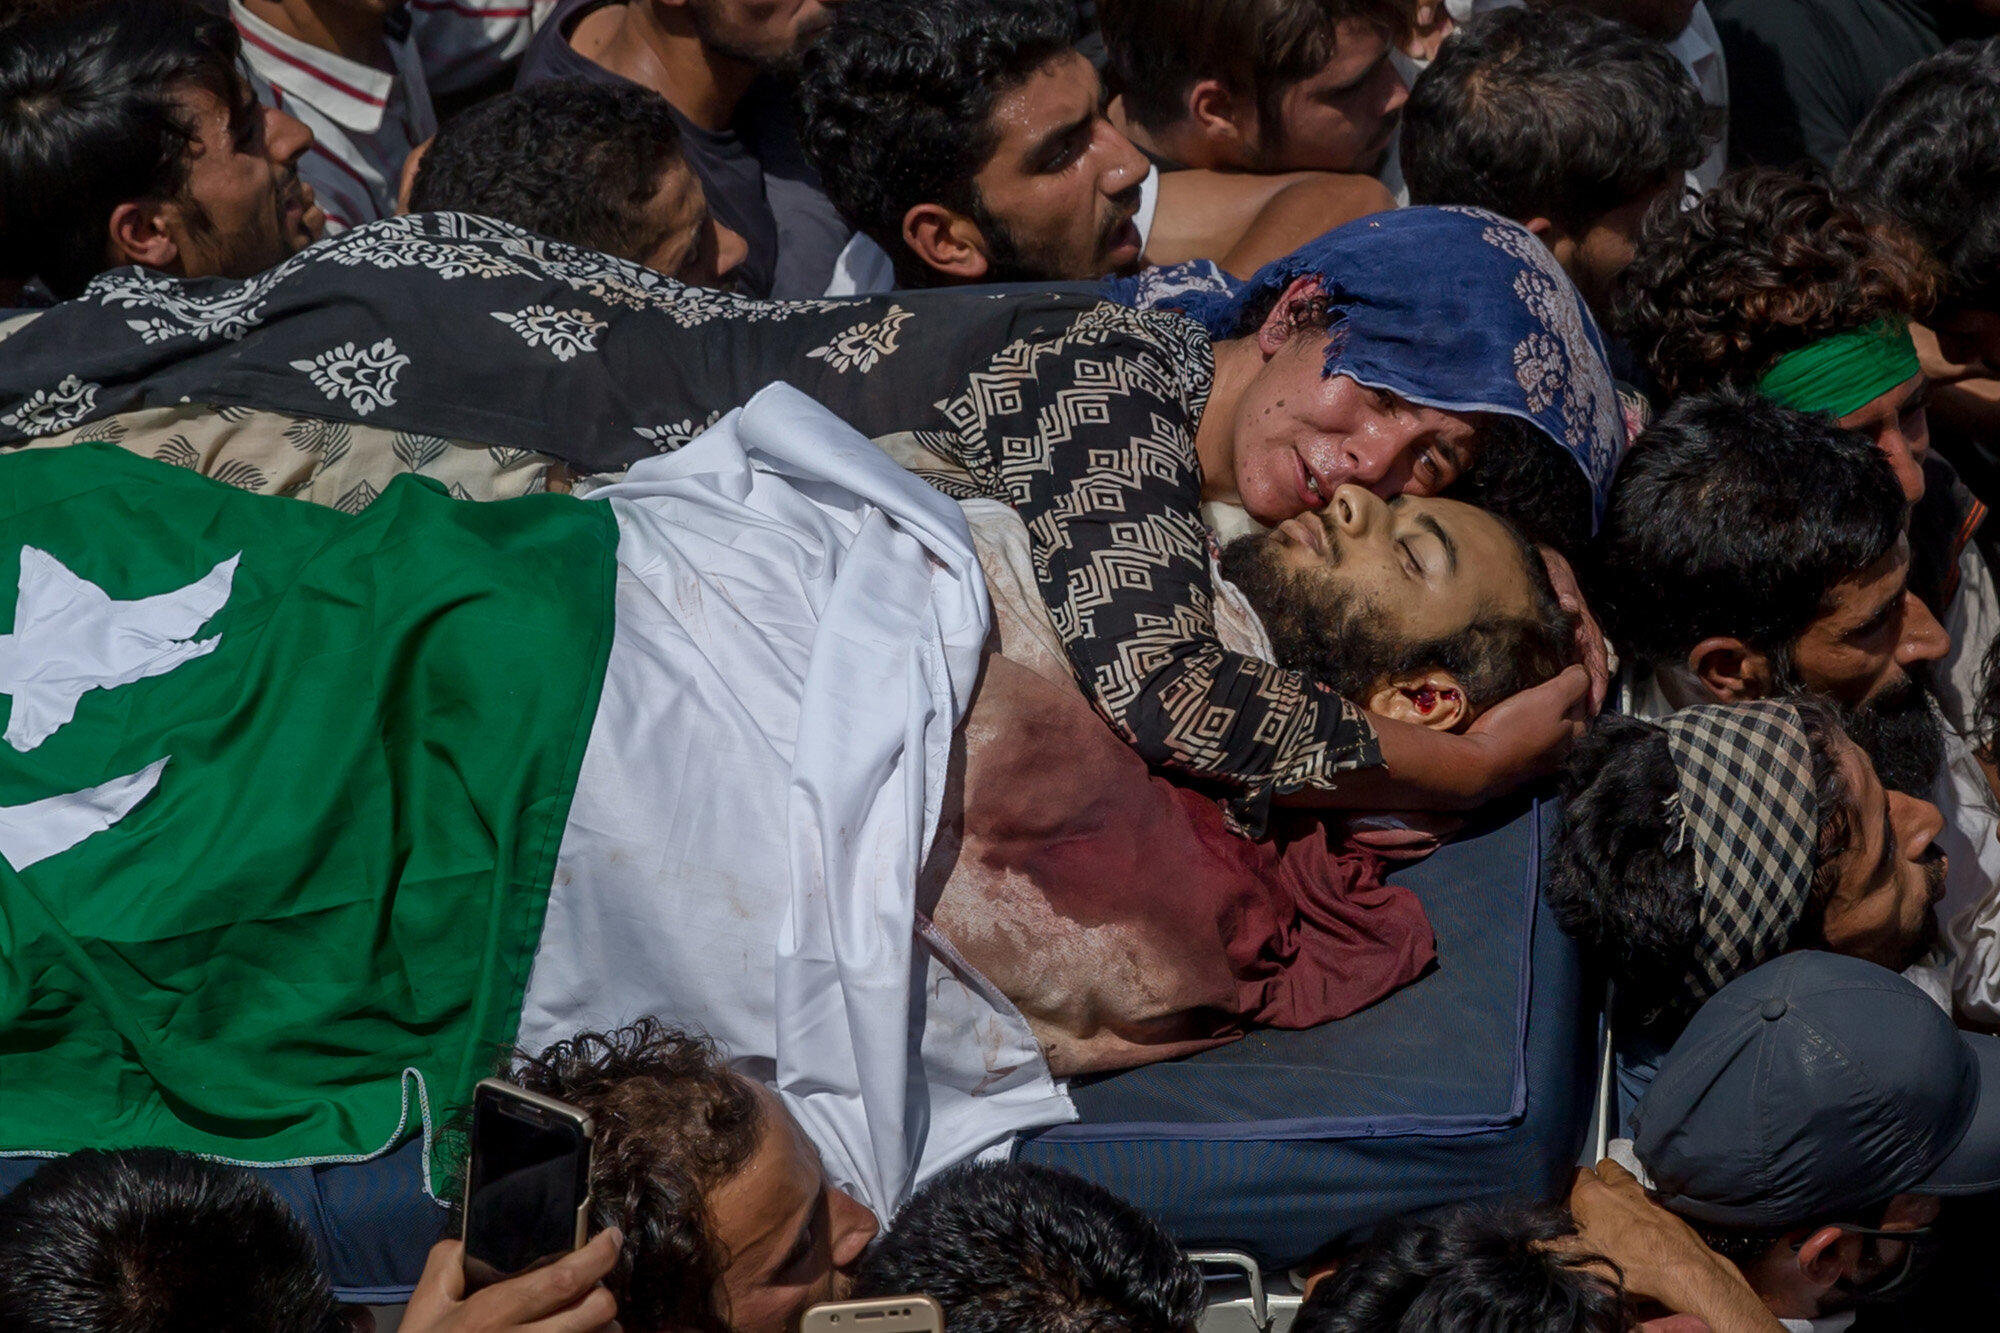 Villagers carry the body of Kashmiri rebel Abid Hamid Mir, as his aunt clings to his body, during his funeral procession in Hajin about 38 Kilometres North of Srinagar, Indian controlled Kashmir, Aug. 5, 2017. (AP Photo/Dar Yasin)